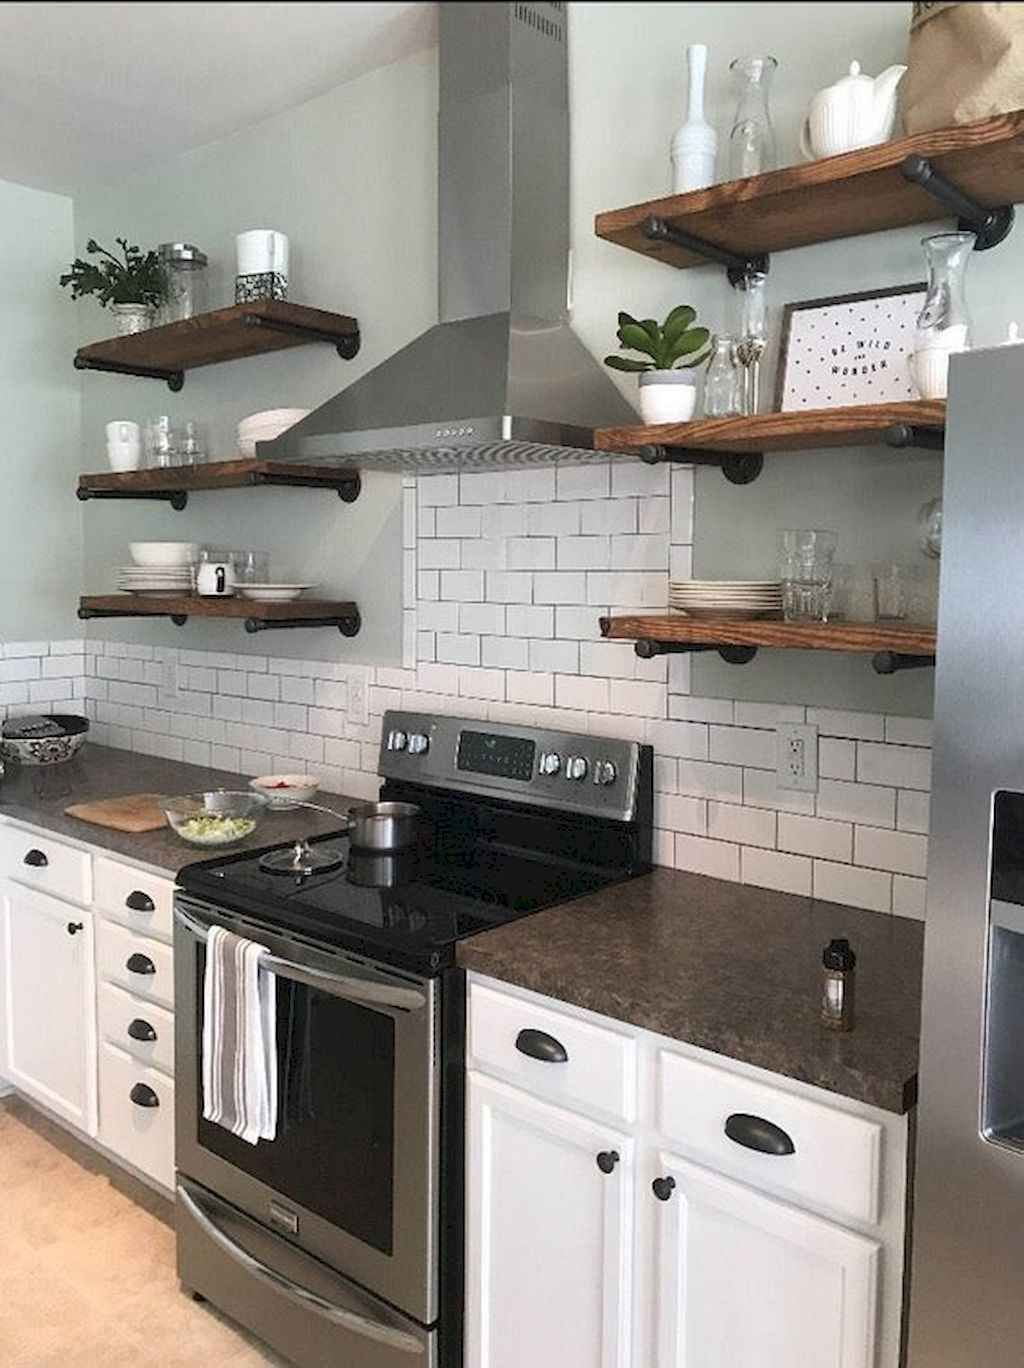 60 rustic kitchen decor with open shelves ideas kitchen remodel kitchen design rustic kitchen on kitchen decor open shelves id=75761